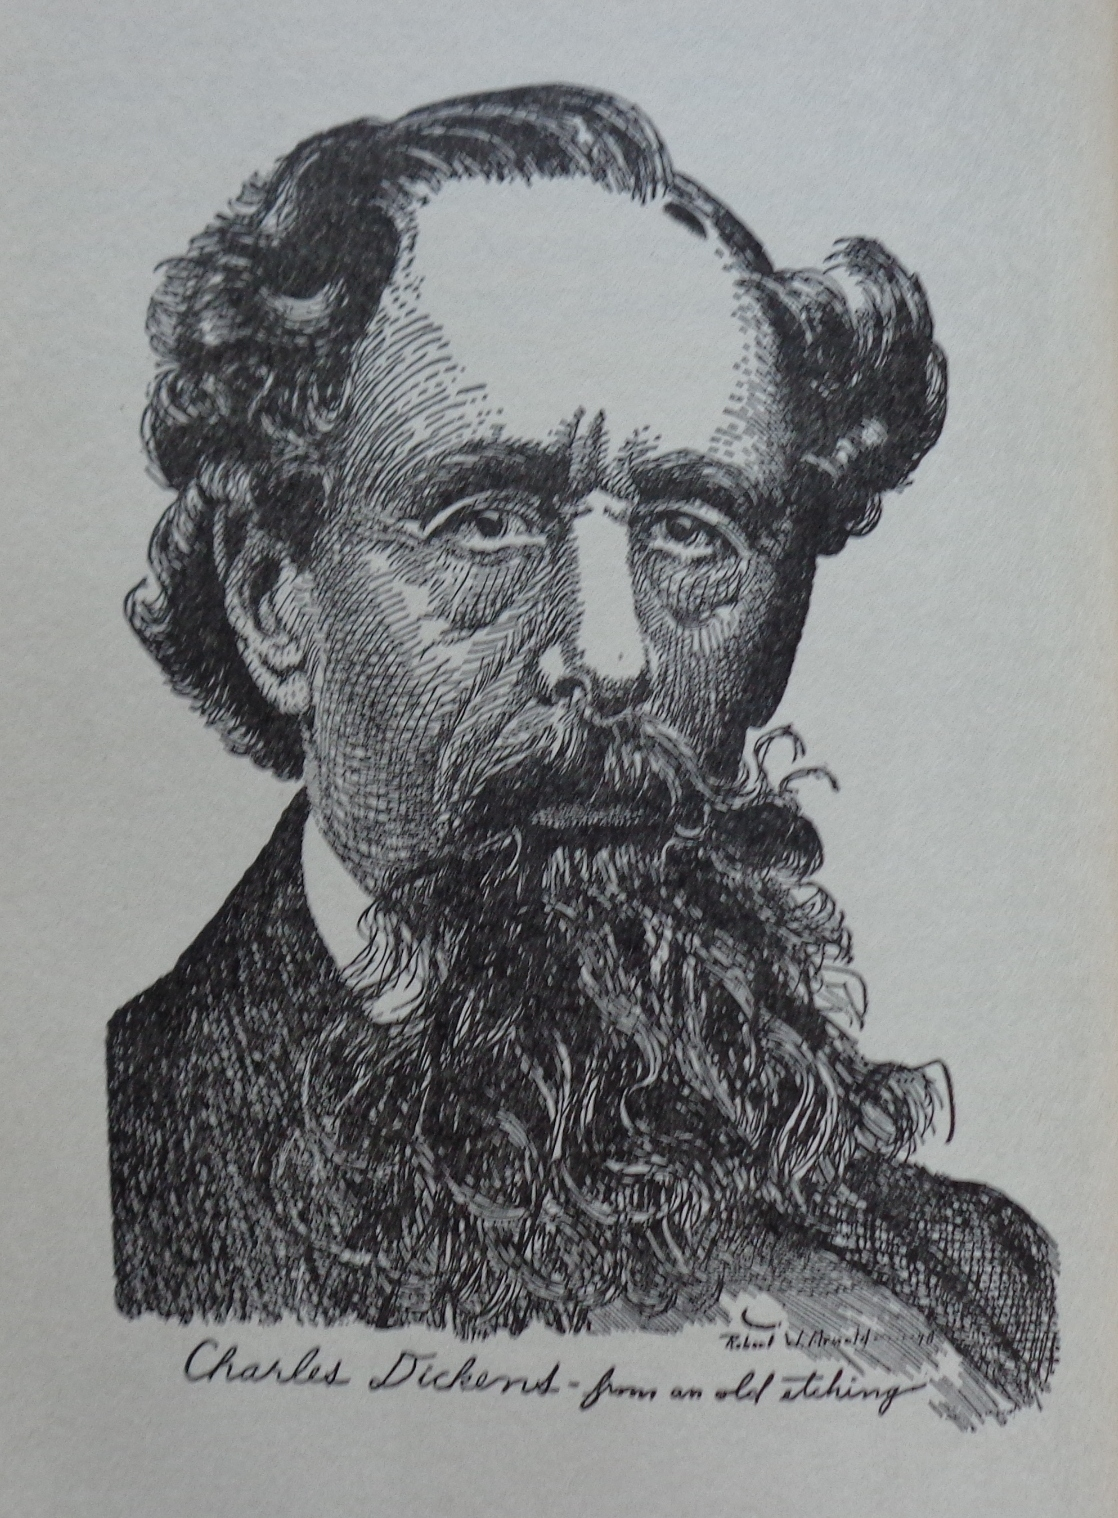 charles dickens most famous bildungsroman novel essay Twenty of dickens's most memorable characters  samuel pickwick is the central character of charles dickens's first novel essay: dickens's novels.